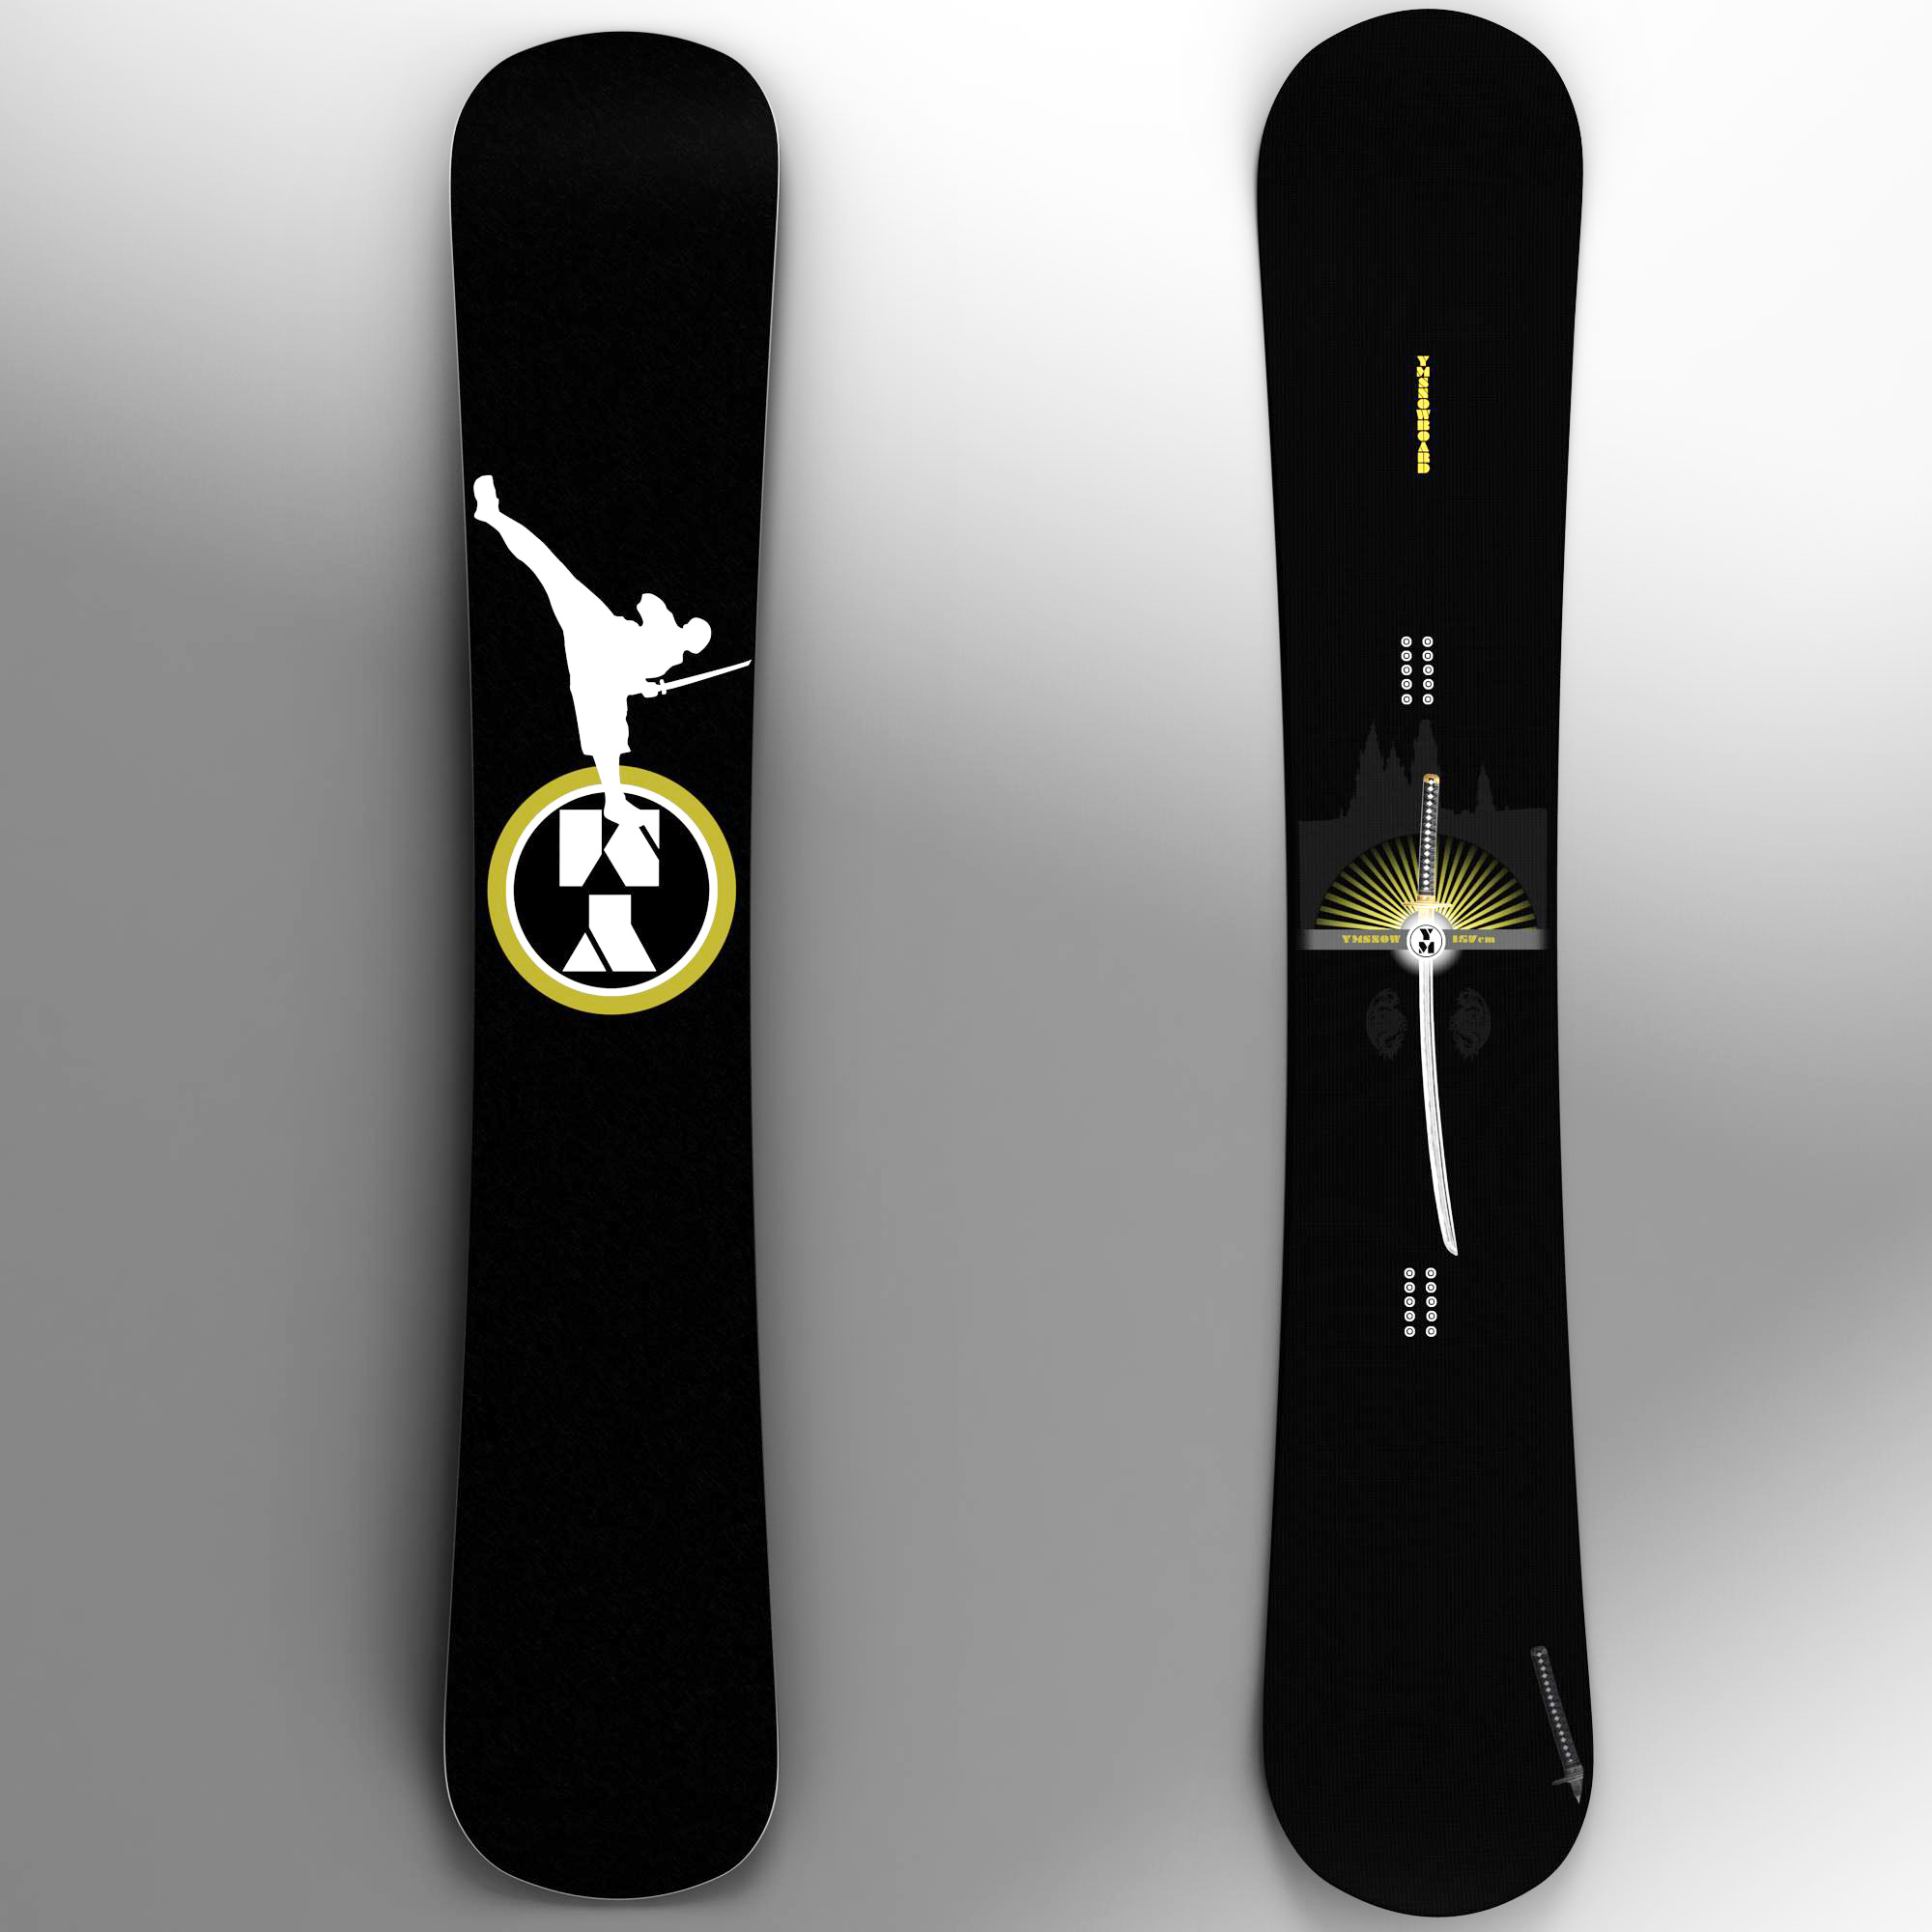 snowboard 3d model 3ds max fbx ma mb obj 157535